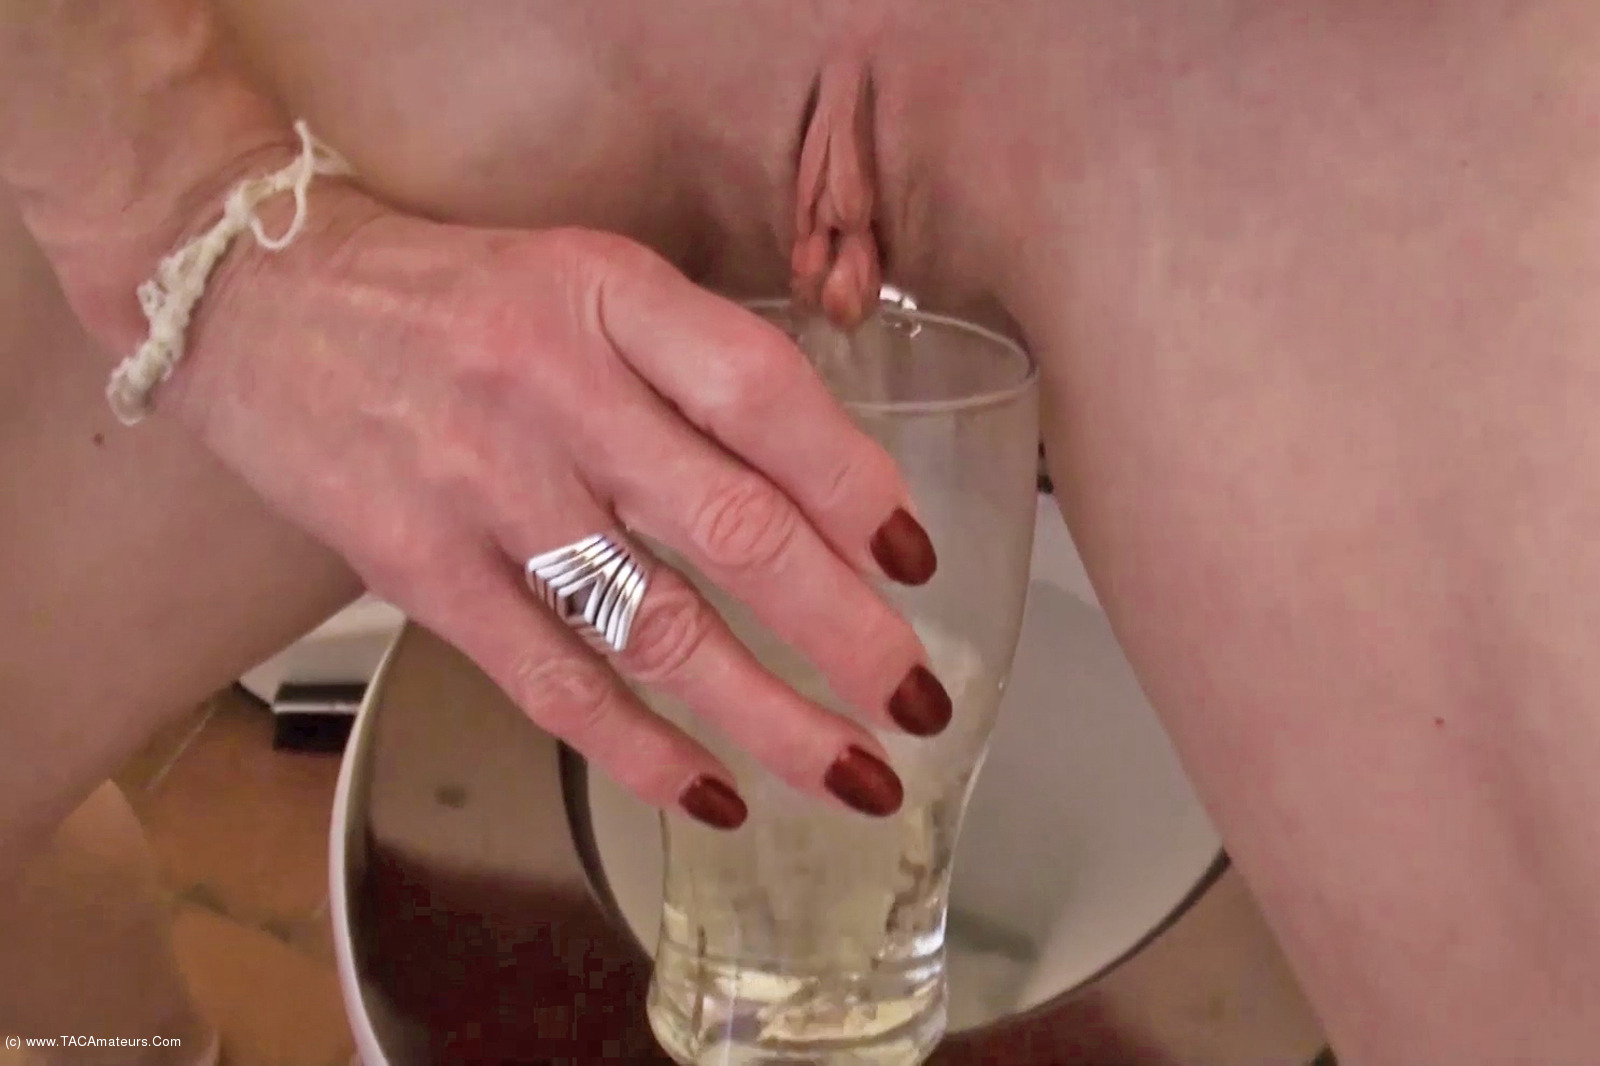 MollyMILF - Pissing For You scene 3